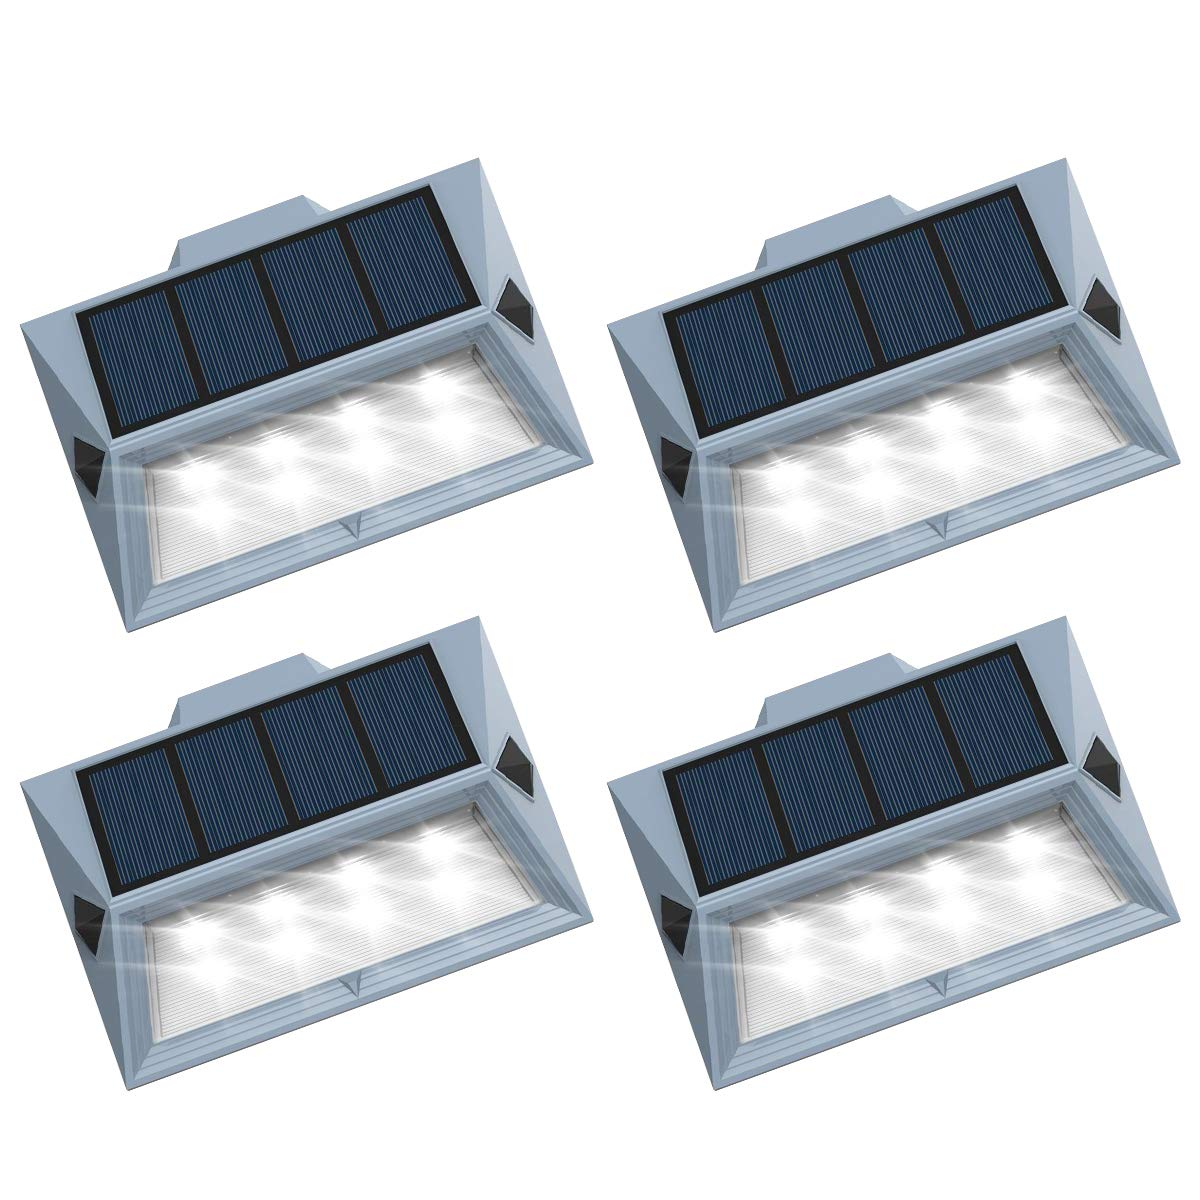 【Newest Version 8 LED】Solar Stair Step Lights Outdoor Decorative Solar Deck Lights Wireless Waterproof Lighting for Garden Wall Paths Patio Decks Auto On/Off 4 Pack by Roopure